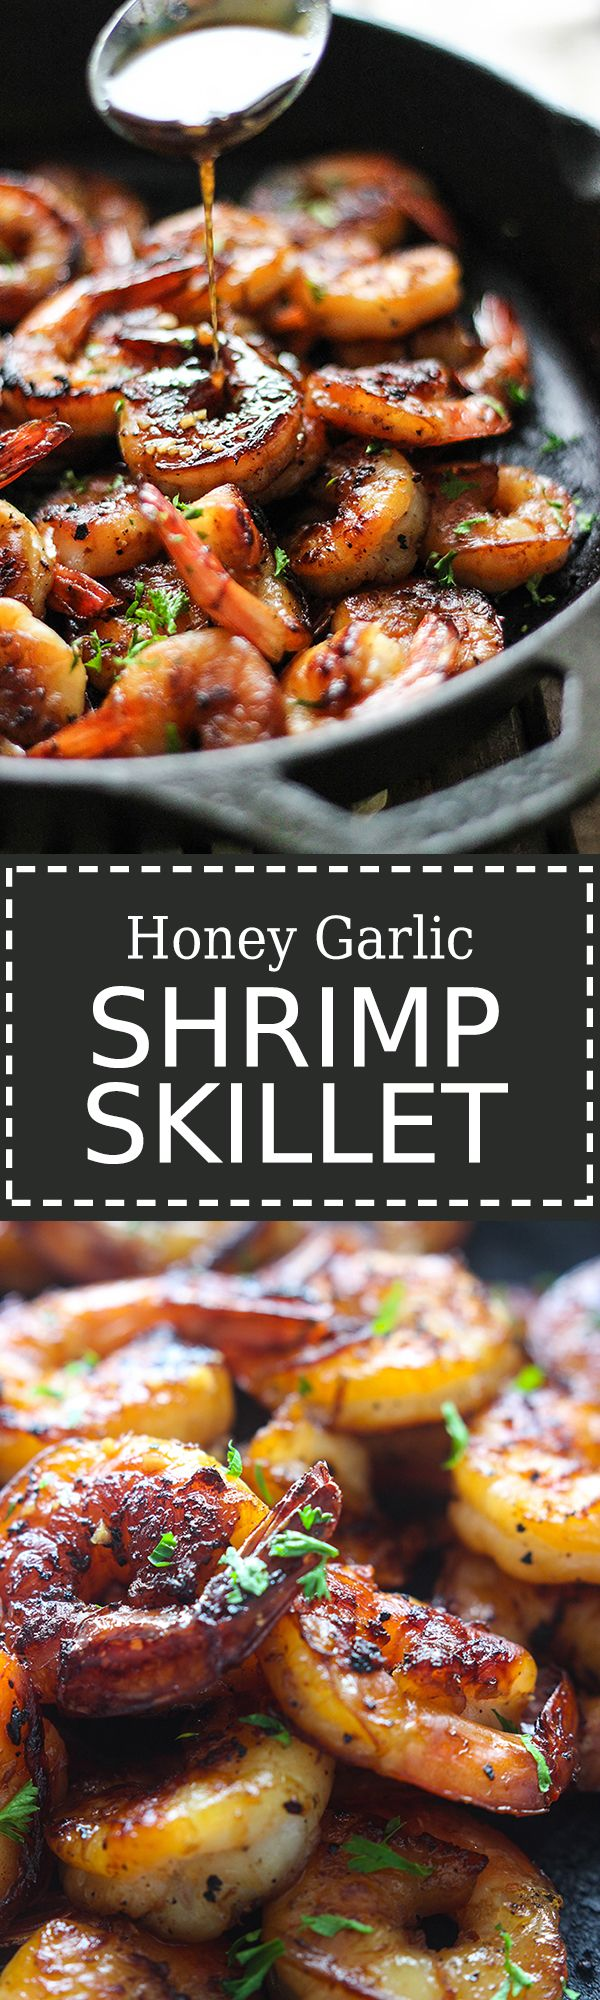 easy only wedge in honey less and sweet minutes  skillet philippines and This garlic five ingredients than sneakers super    cooked with shrimp is smoky